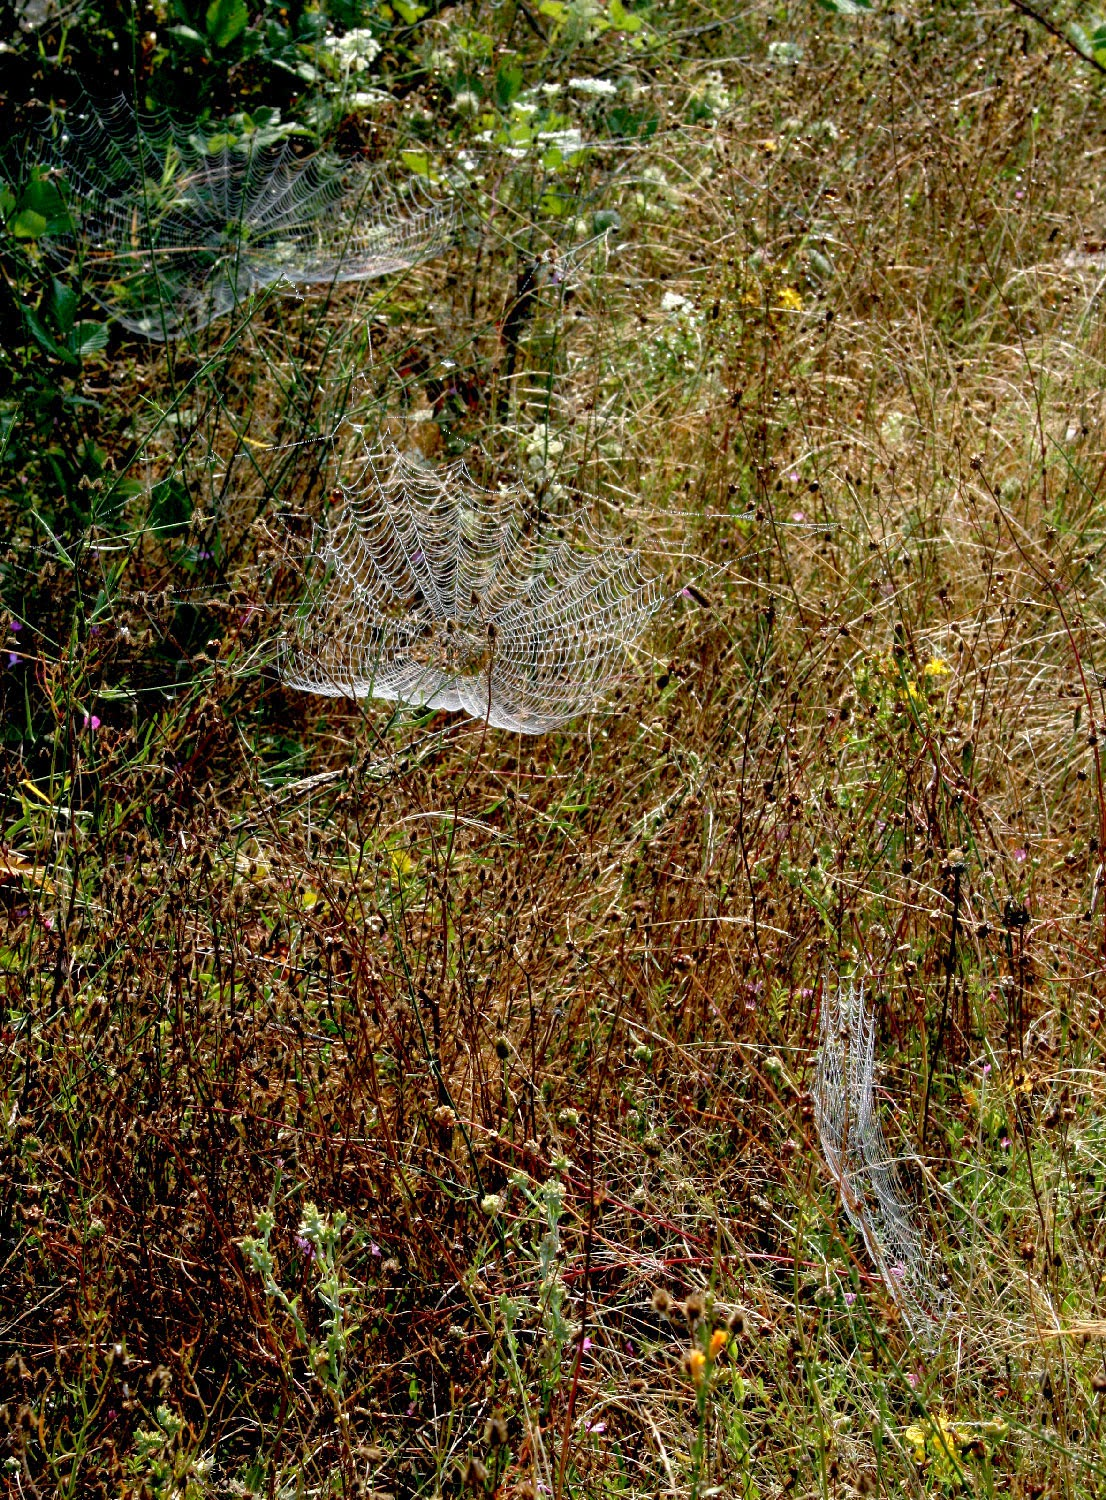 Three spiders webs